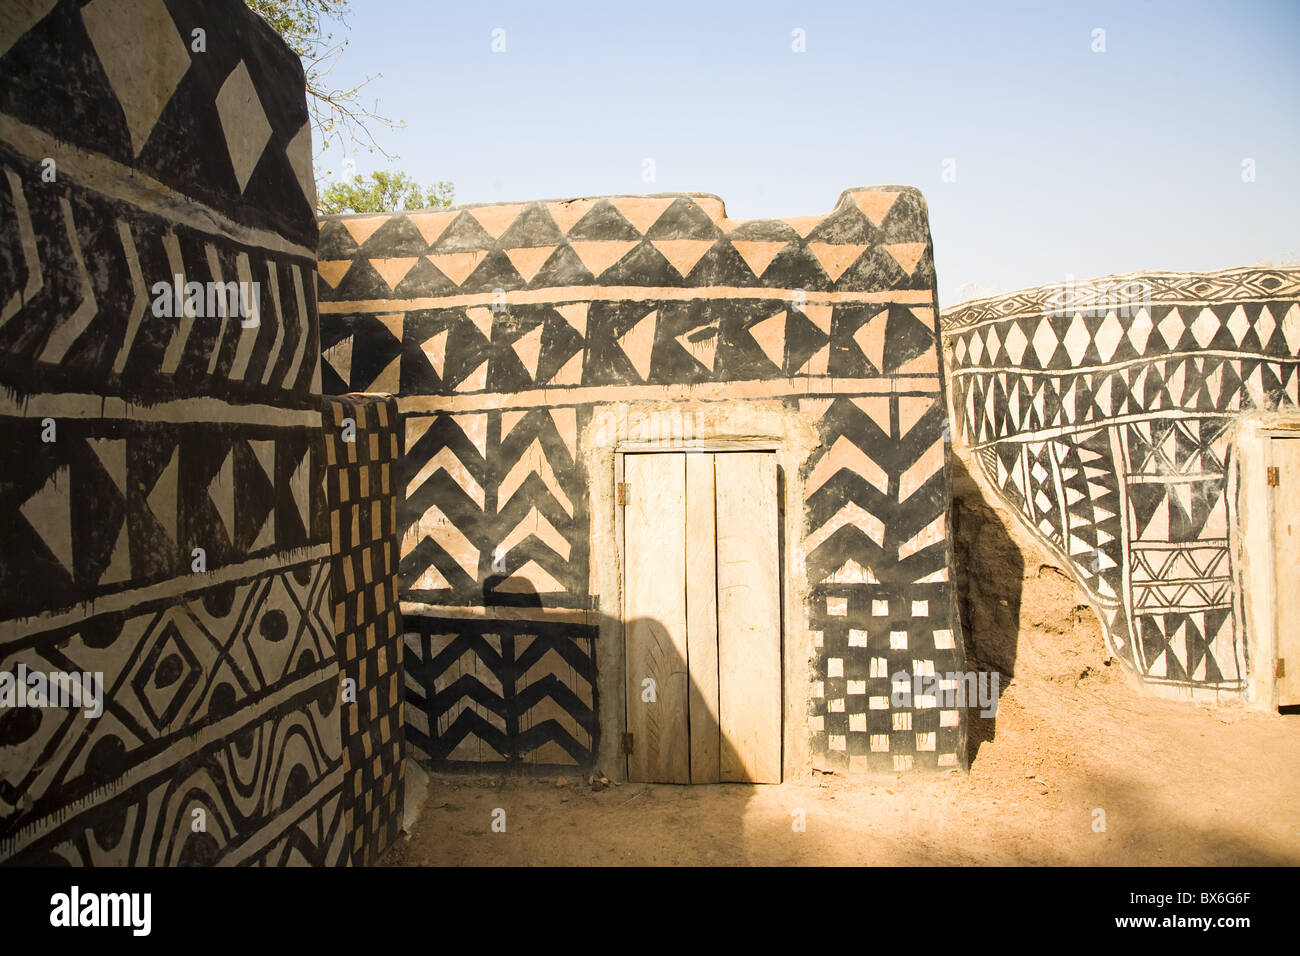 Geometric design on mud brick dwellings in Tiebele, Burkina Faso, West Africa, Africa - Stock Image